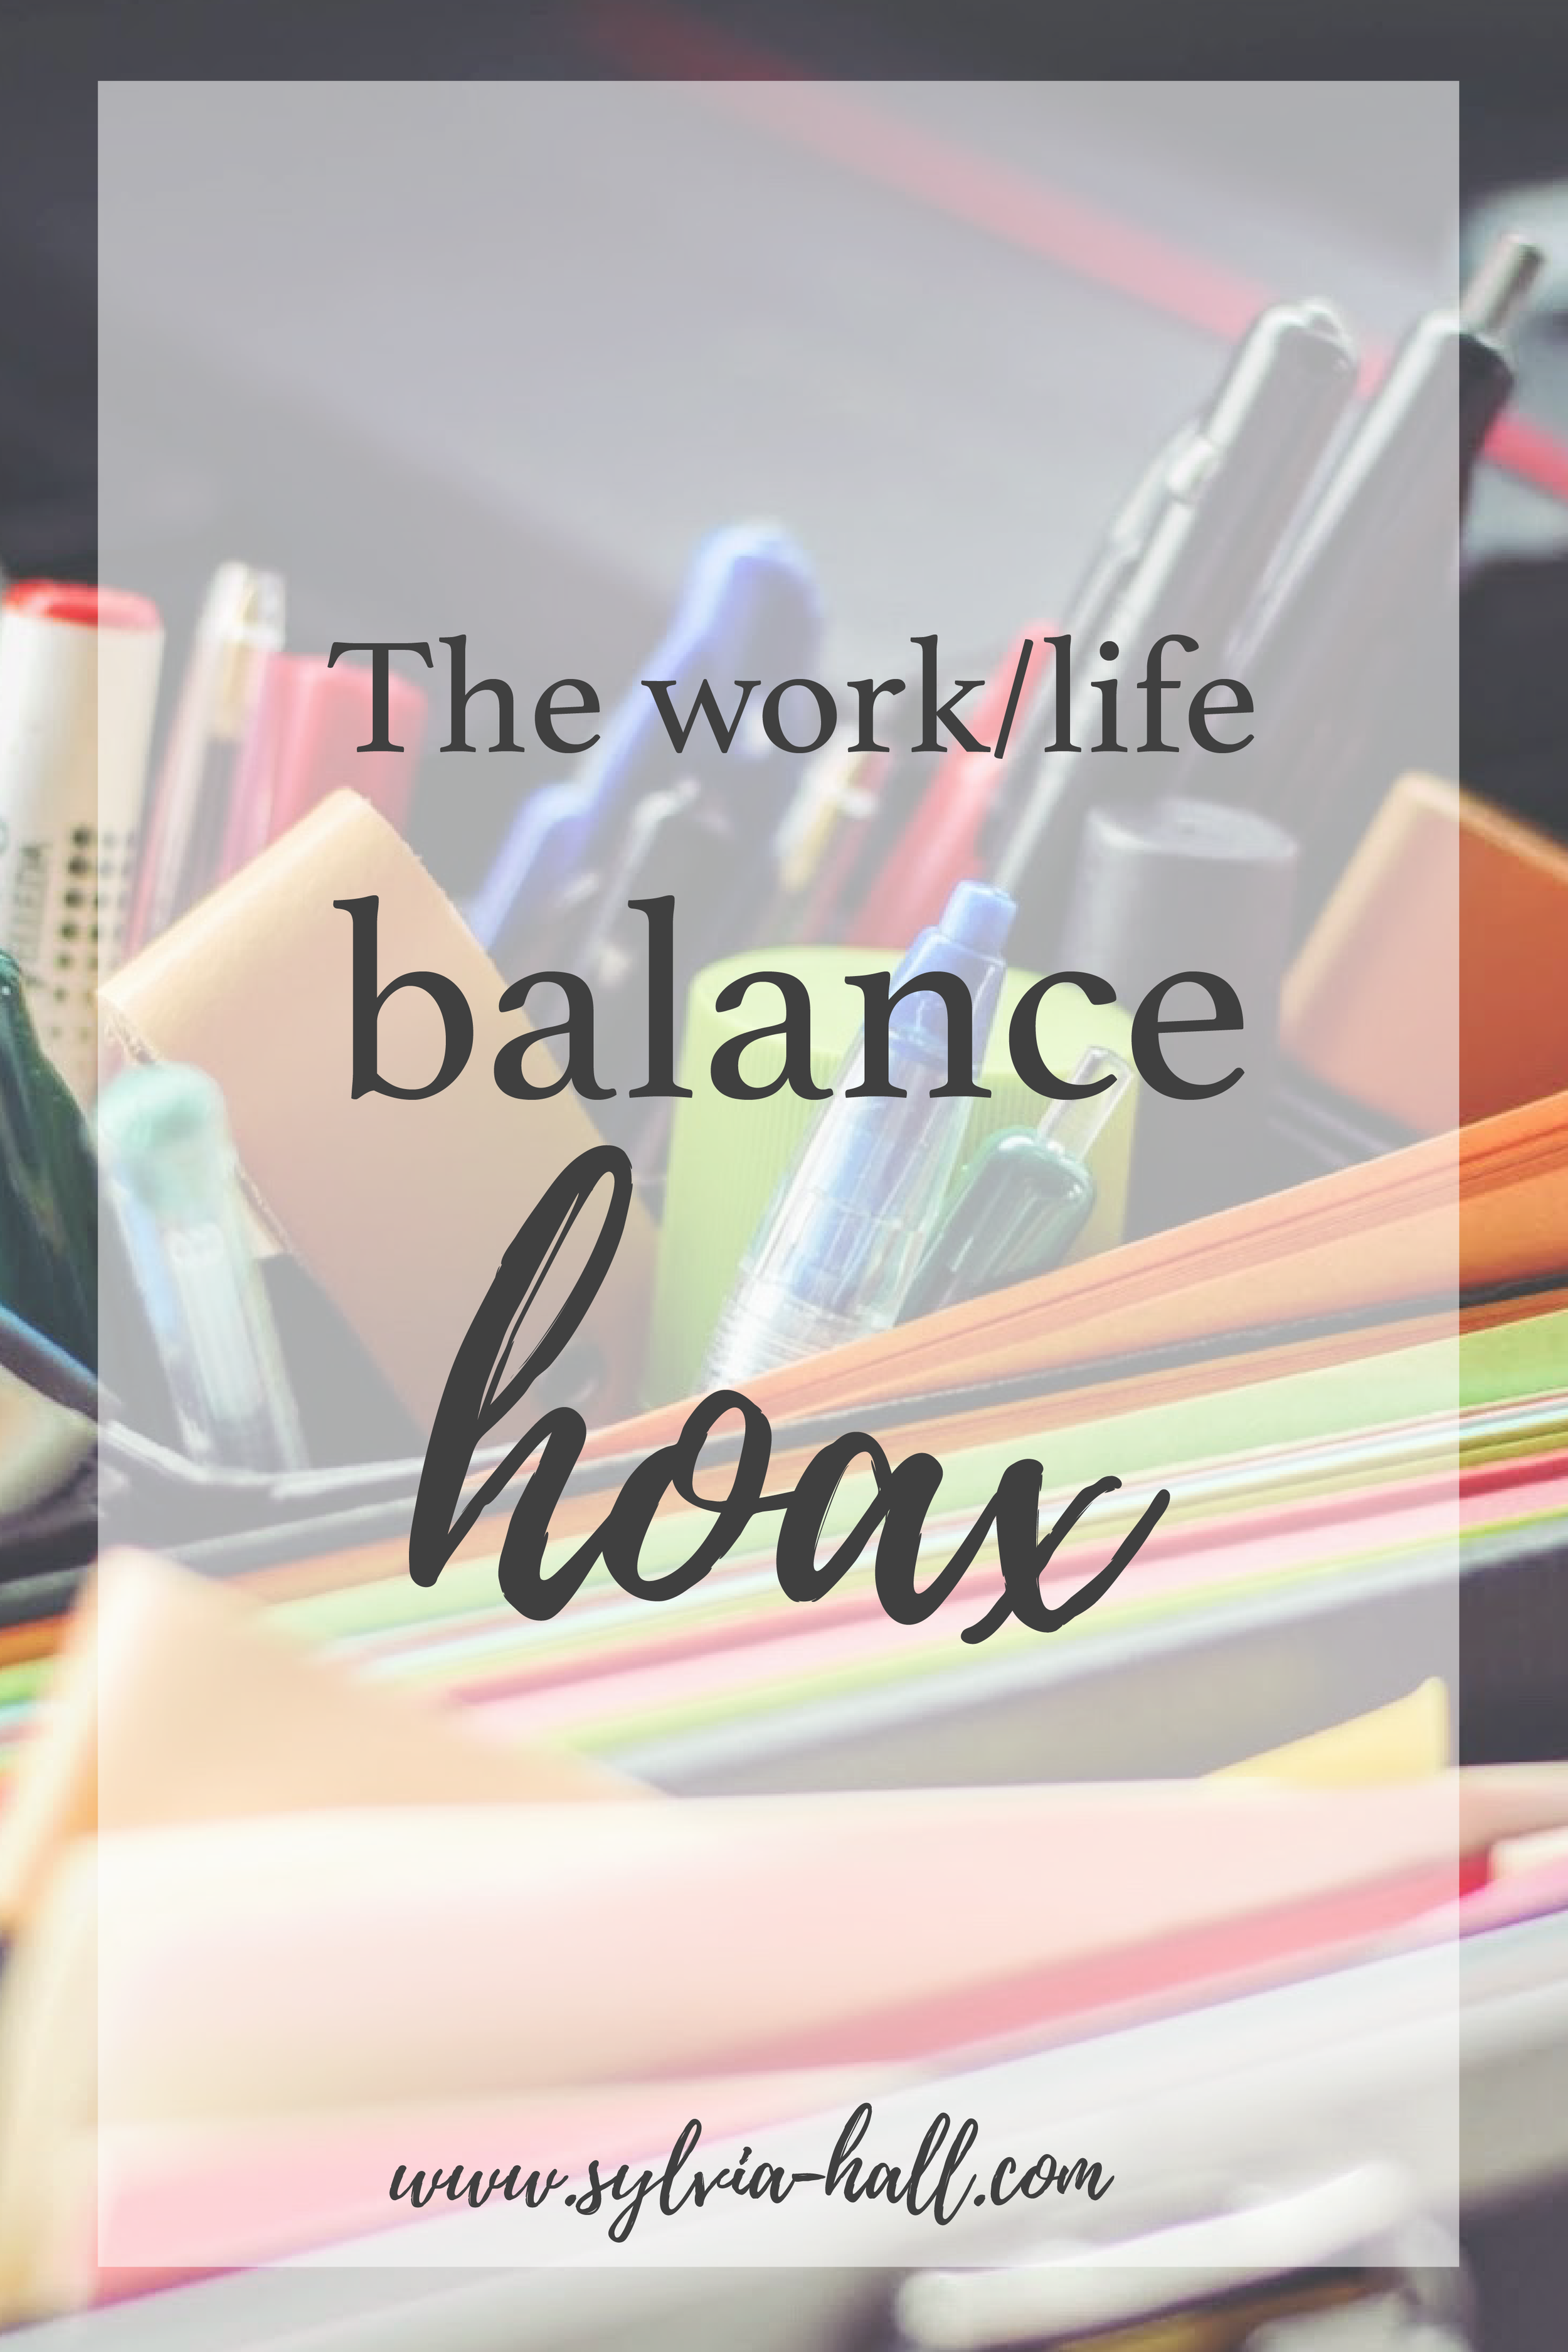 the work/life balance hoax